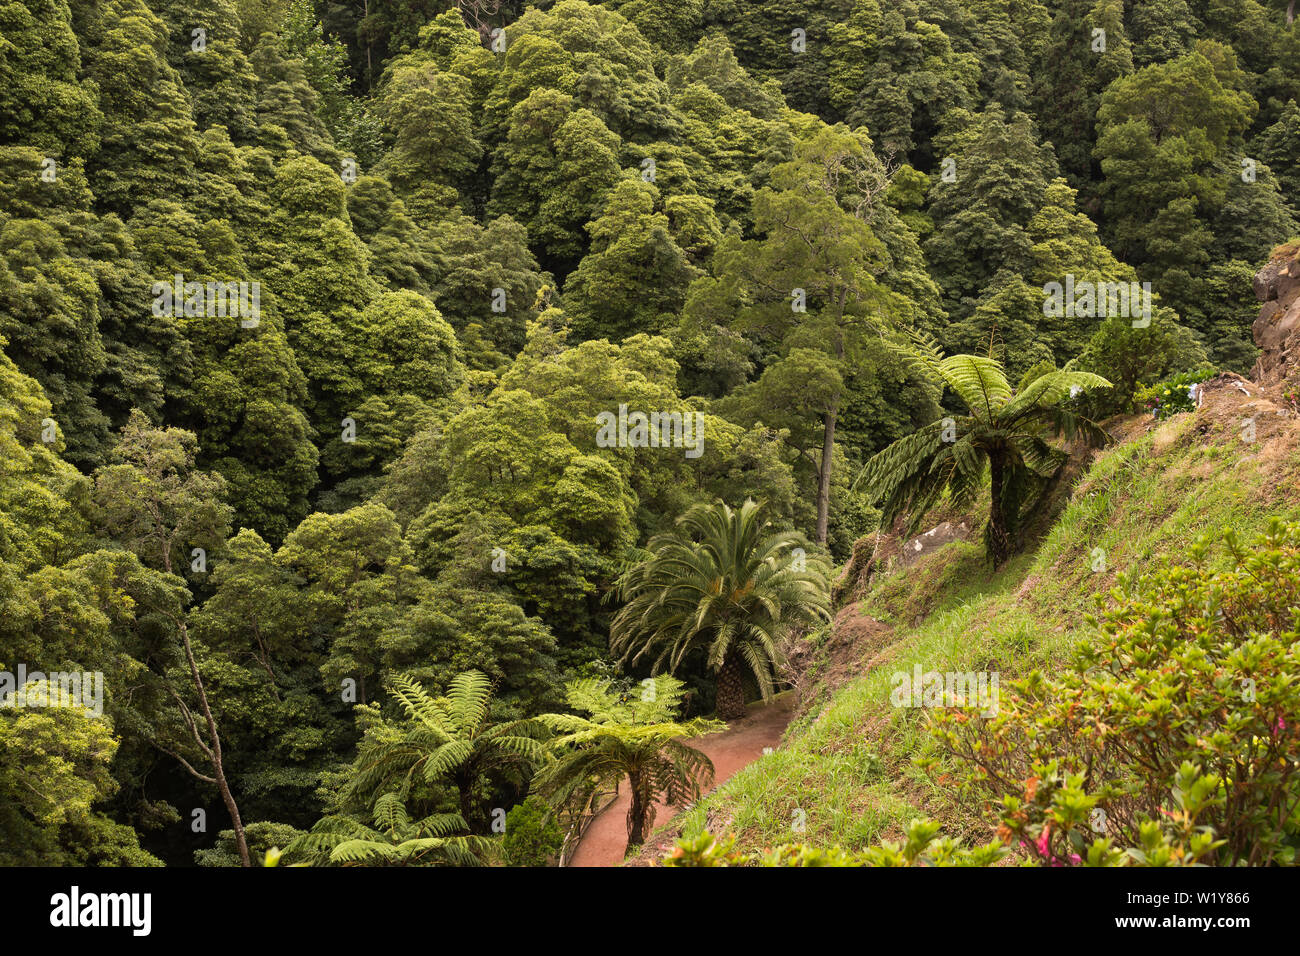 Fresh green color of the vegetation, which includes also generic plants. Nature park with a waterfall in Nordeste, Sao Miguel, Azores Islands, Portuga - Stock Image